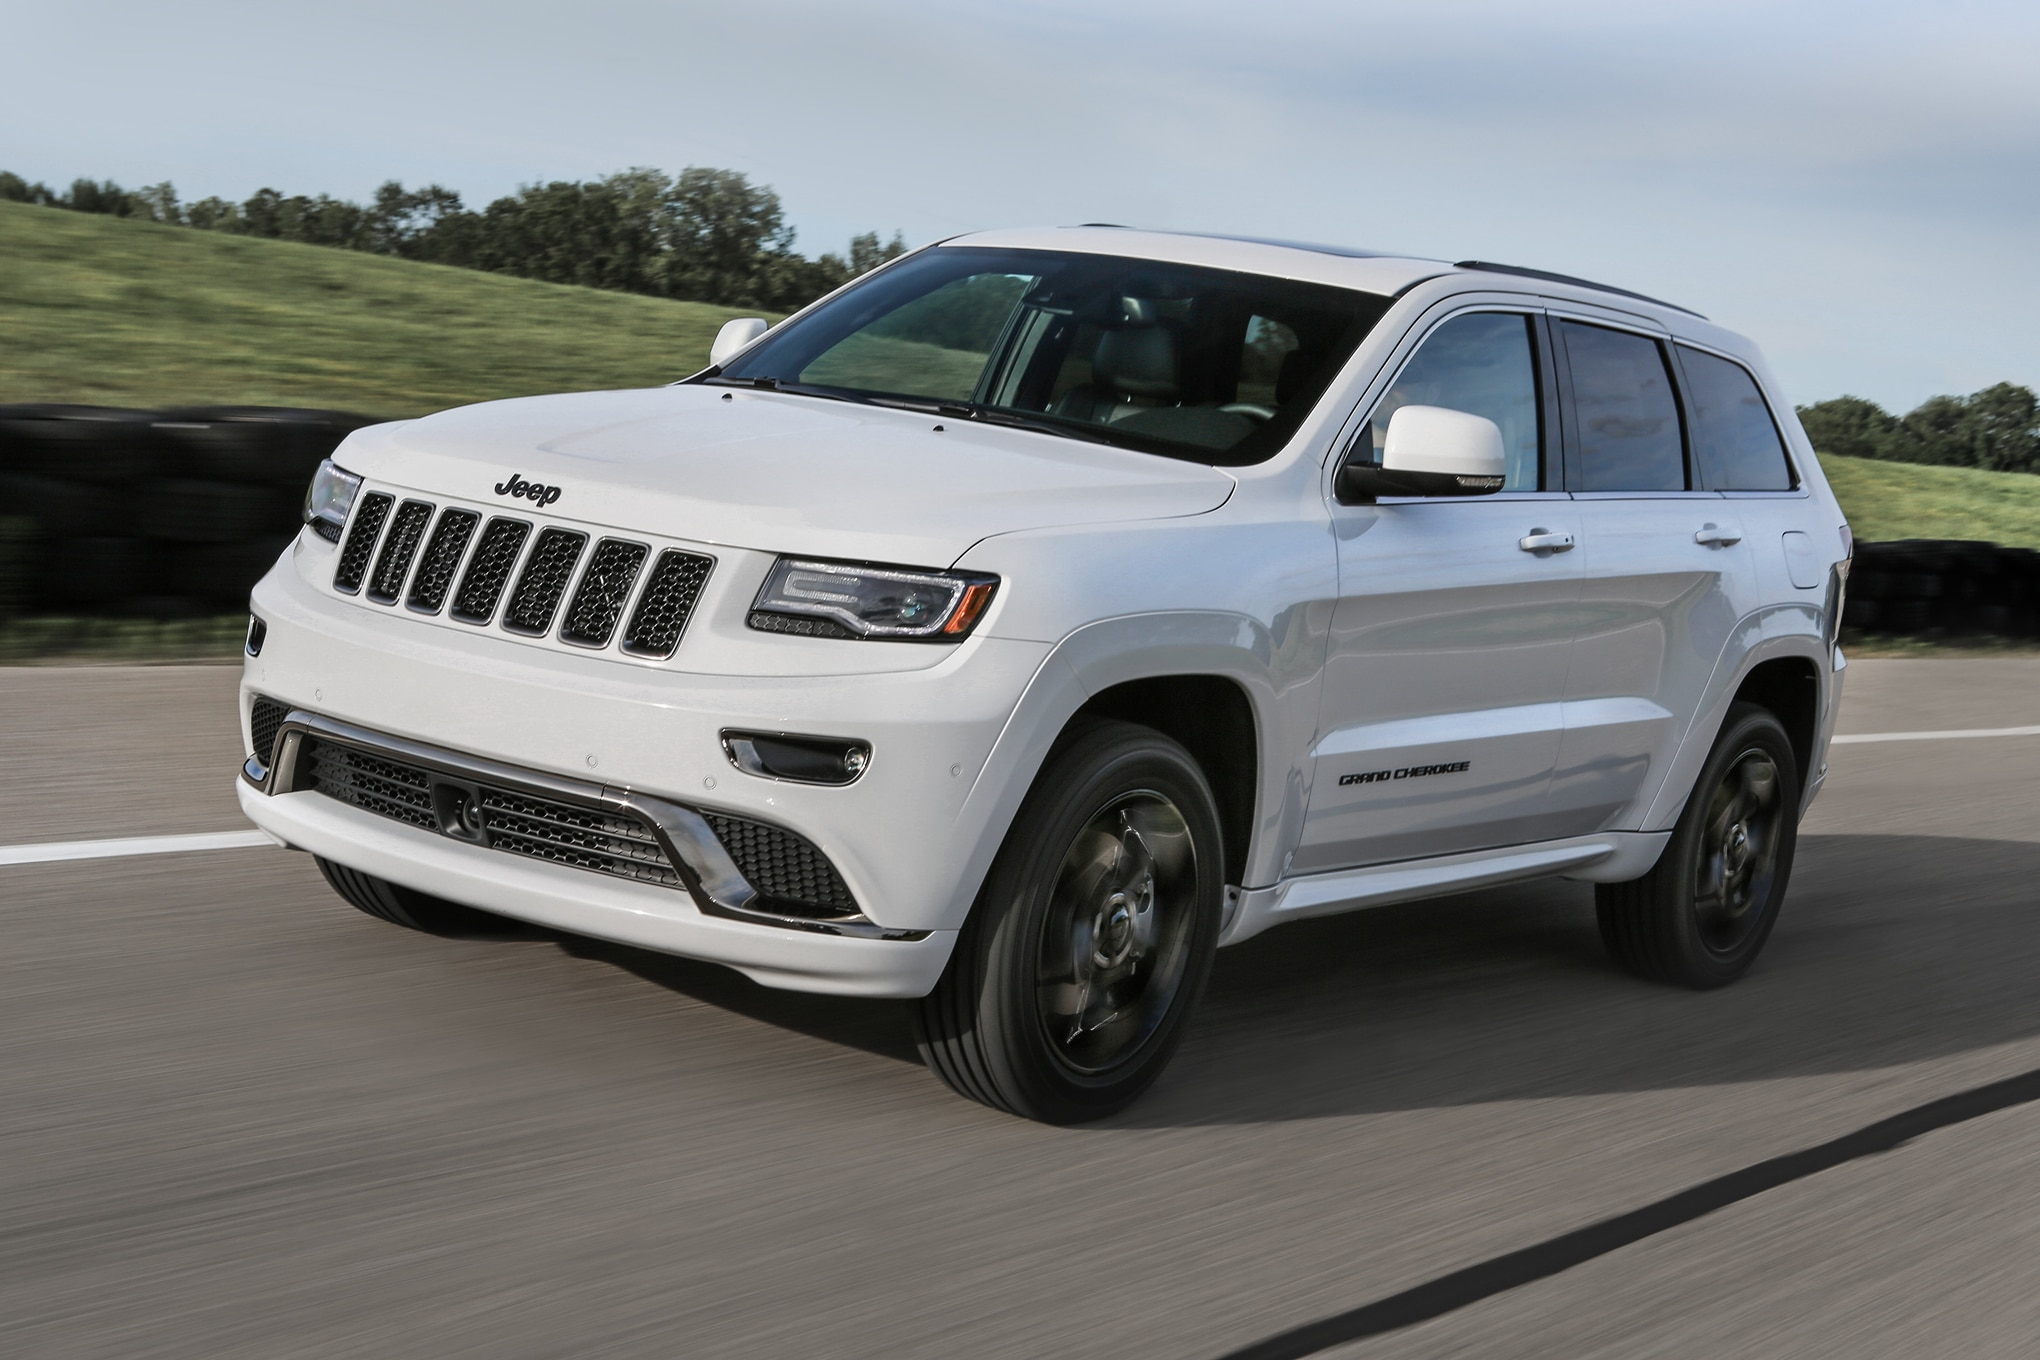 2016 Jeep Grand Cherokee High Altitude front three quarter in motion1?interpolation=lanczos none&fit=around 660 440 37,000 2016 jeep grand cherokee suvs being recalled for shifter issue  at gsmx.co